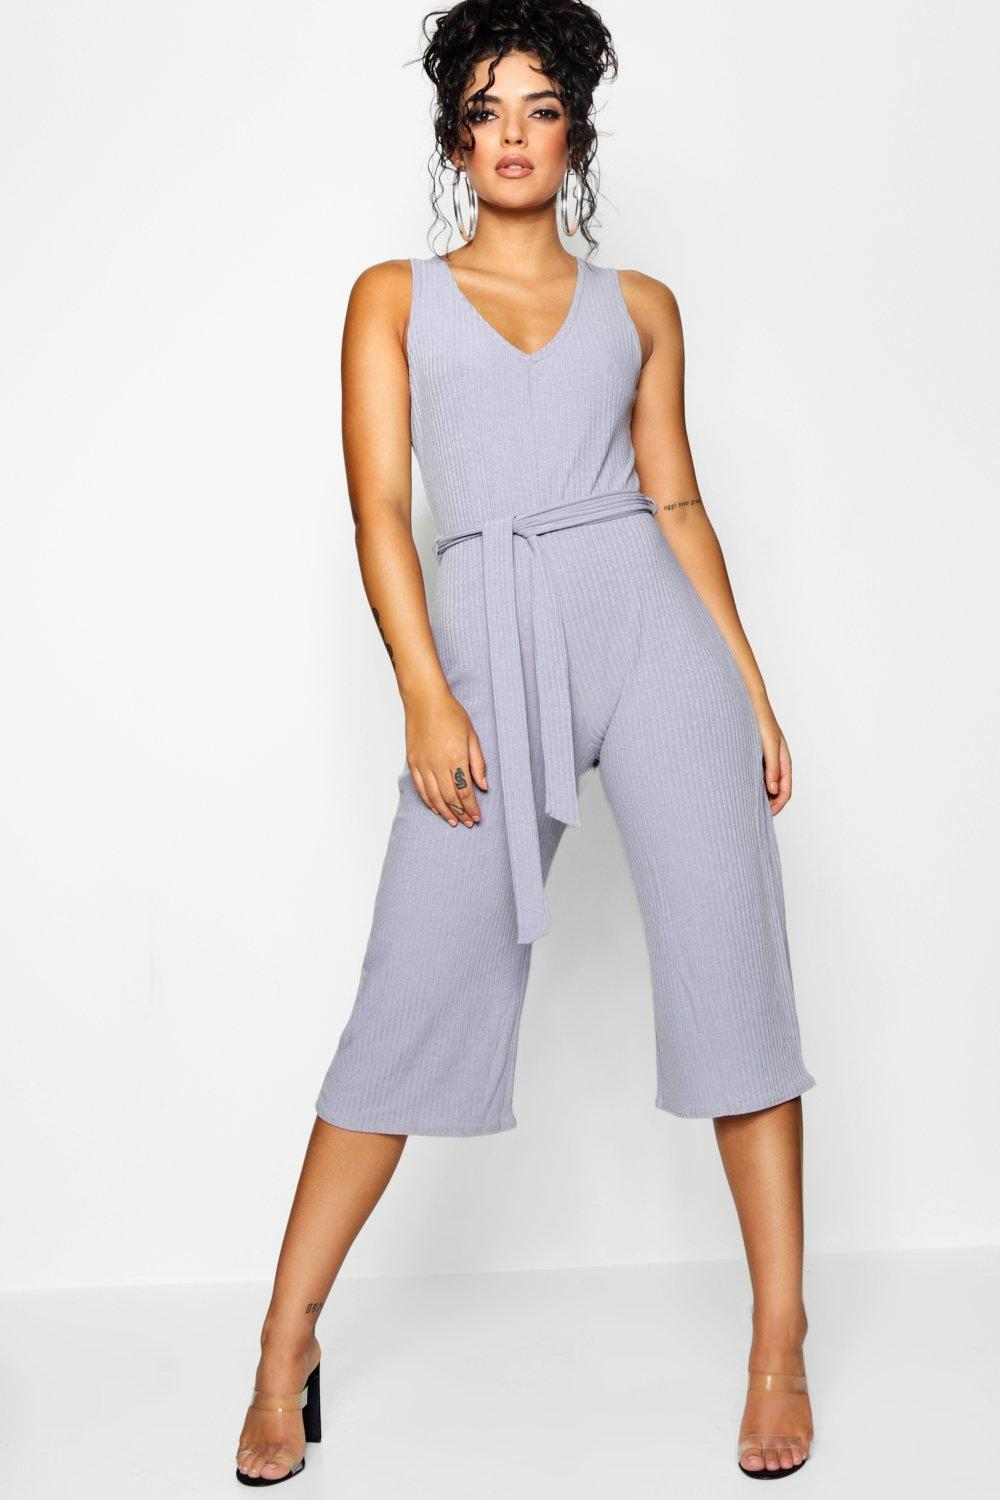 Buy Cheap Silver Jumpsuit - Compare Womenu0026#39;s Outerwear Prices For Best UK Deals